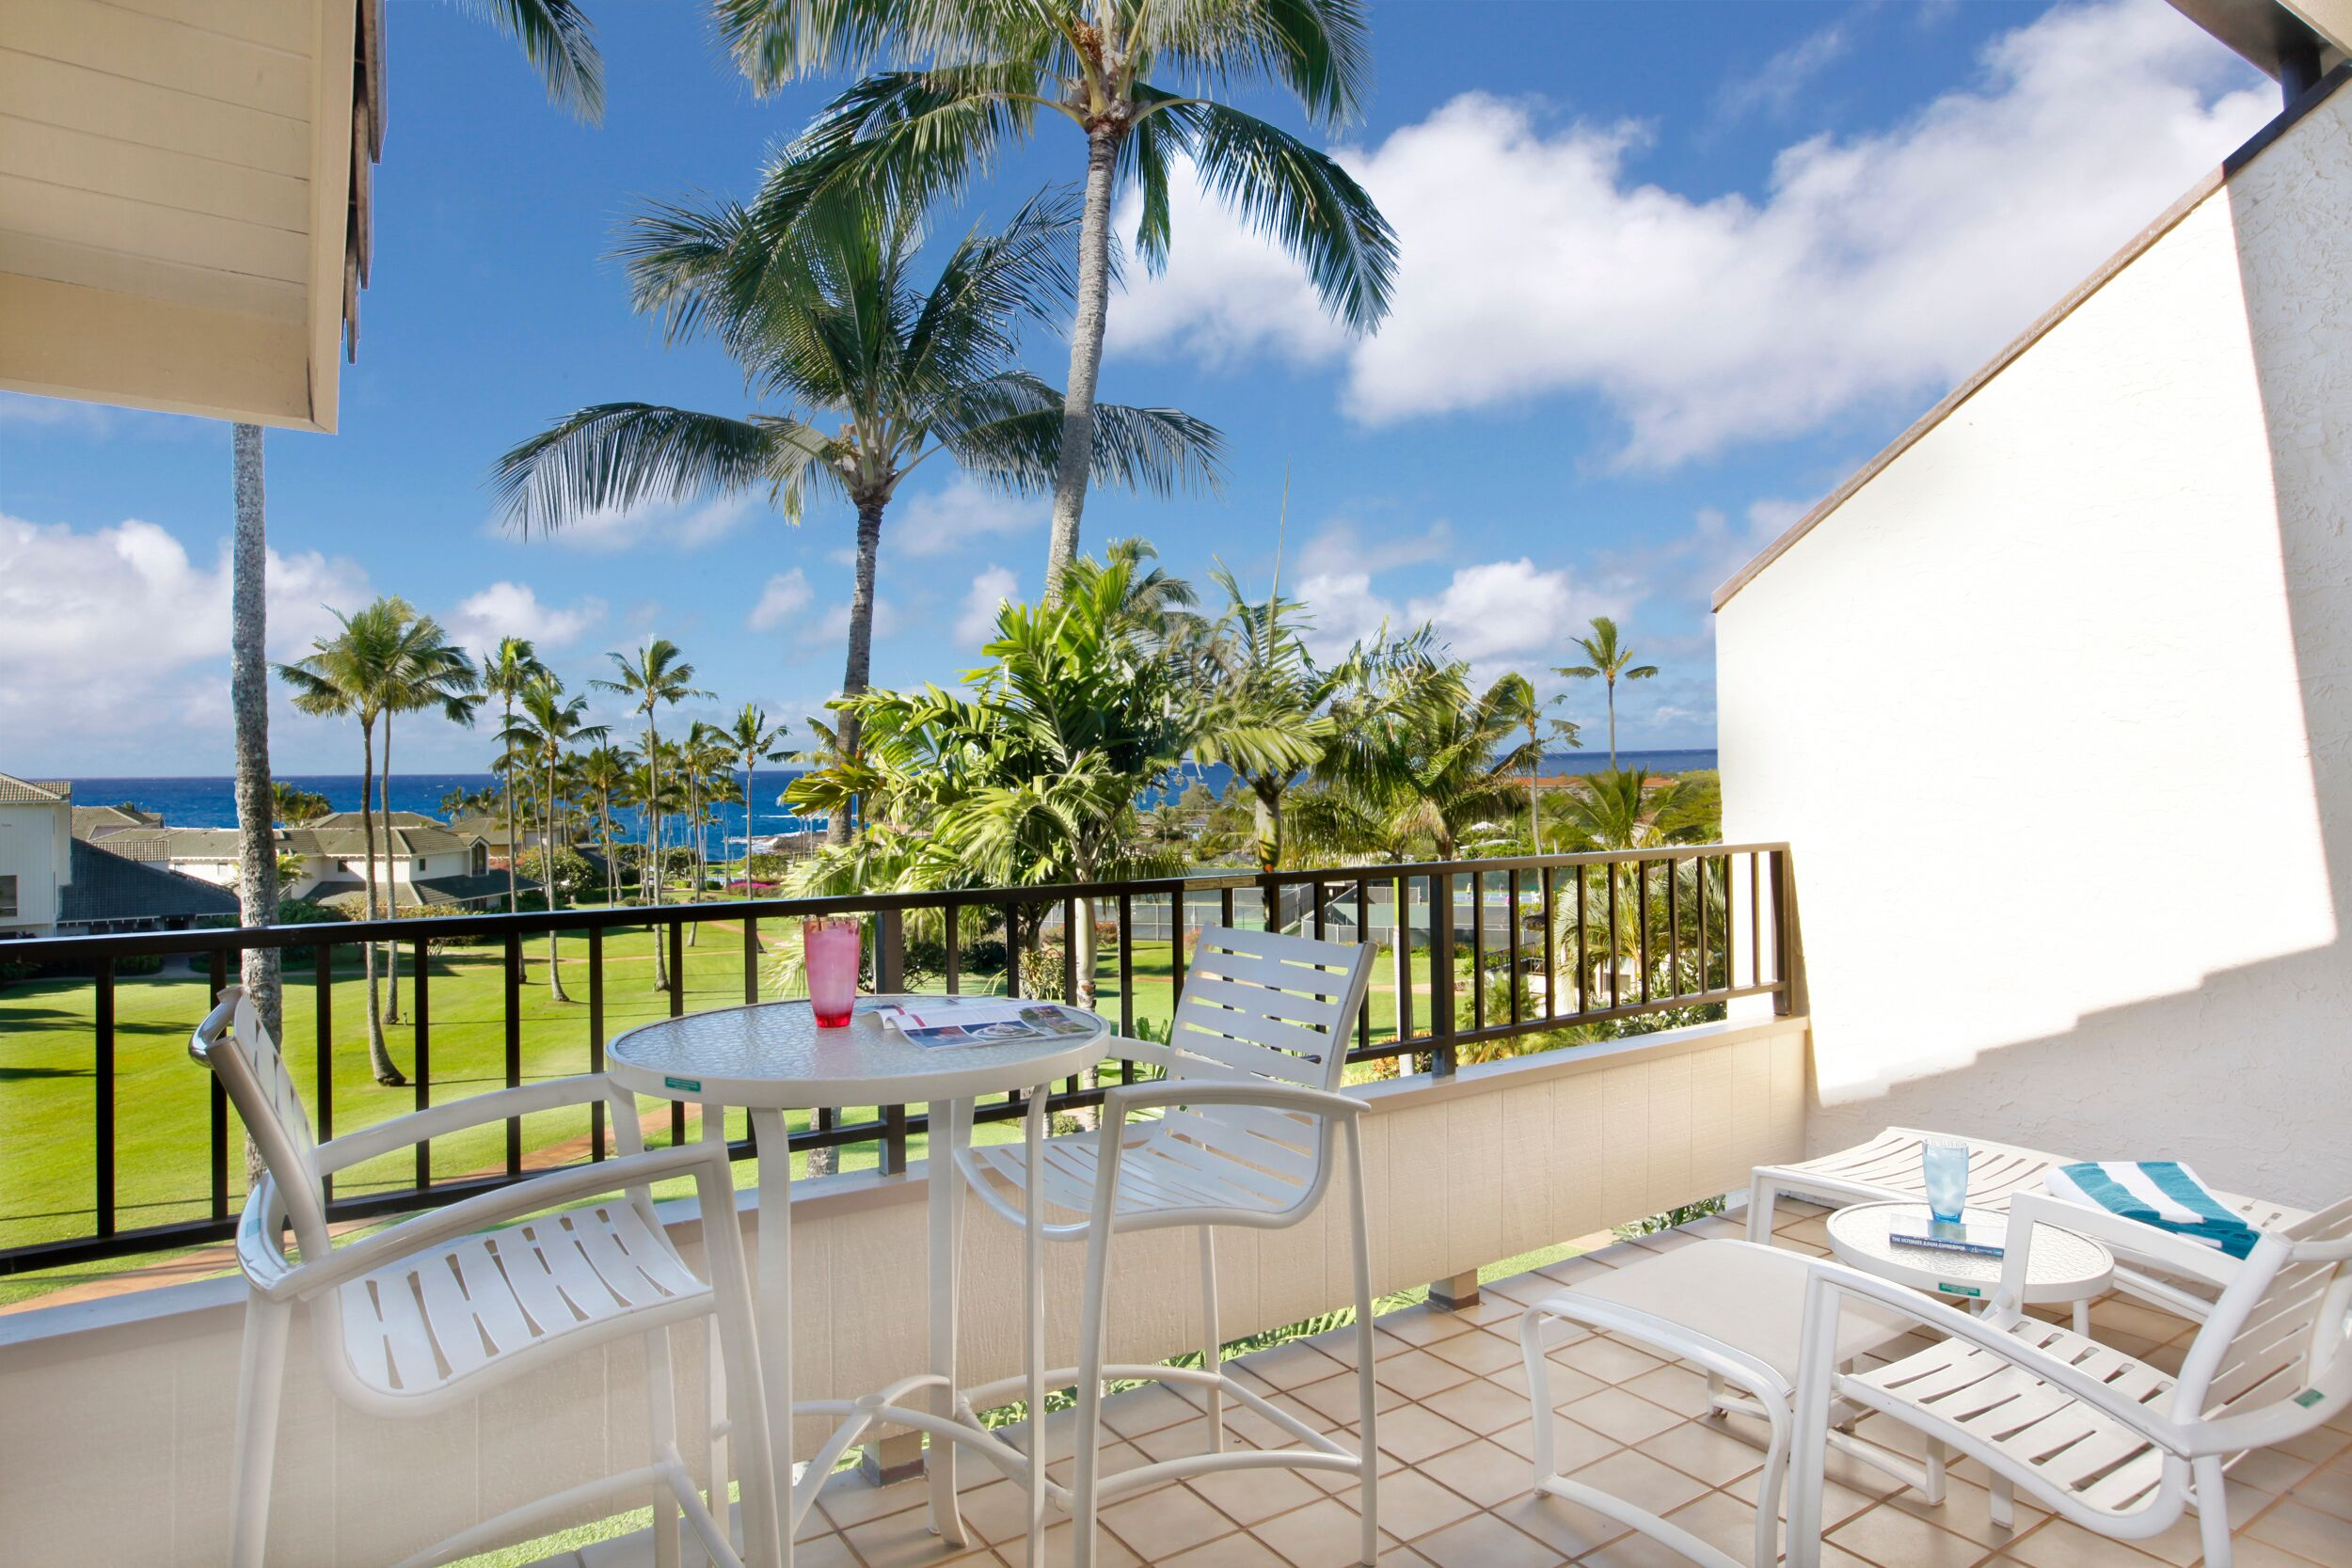 Property Image 2 - Spacious Hawaiian Getaway with Spectacular Ocean Views